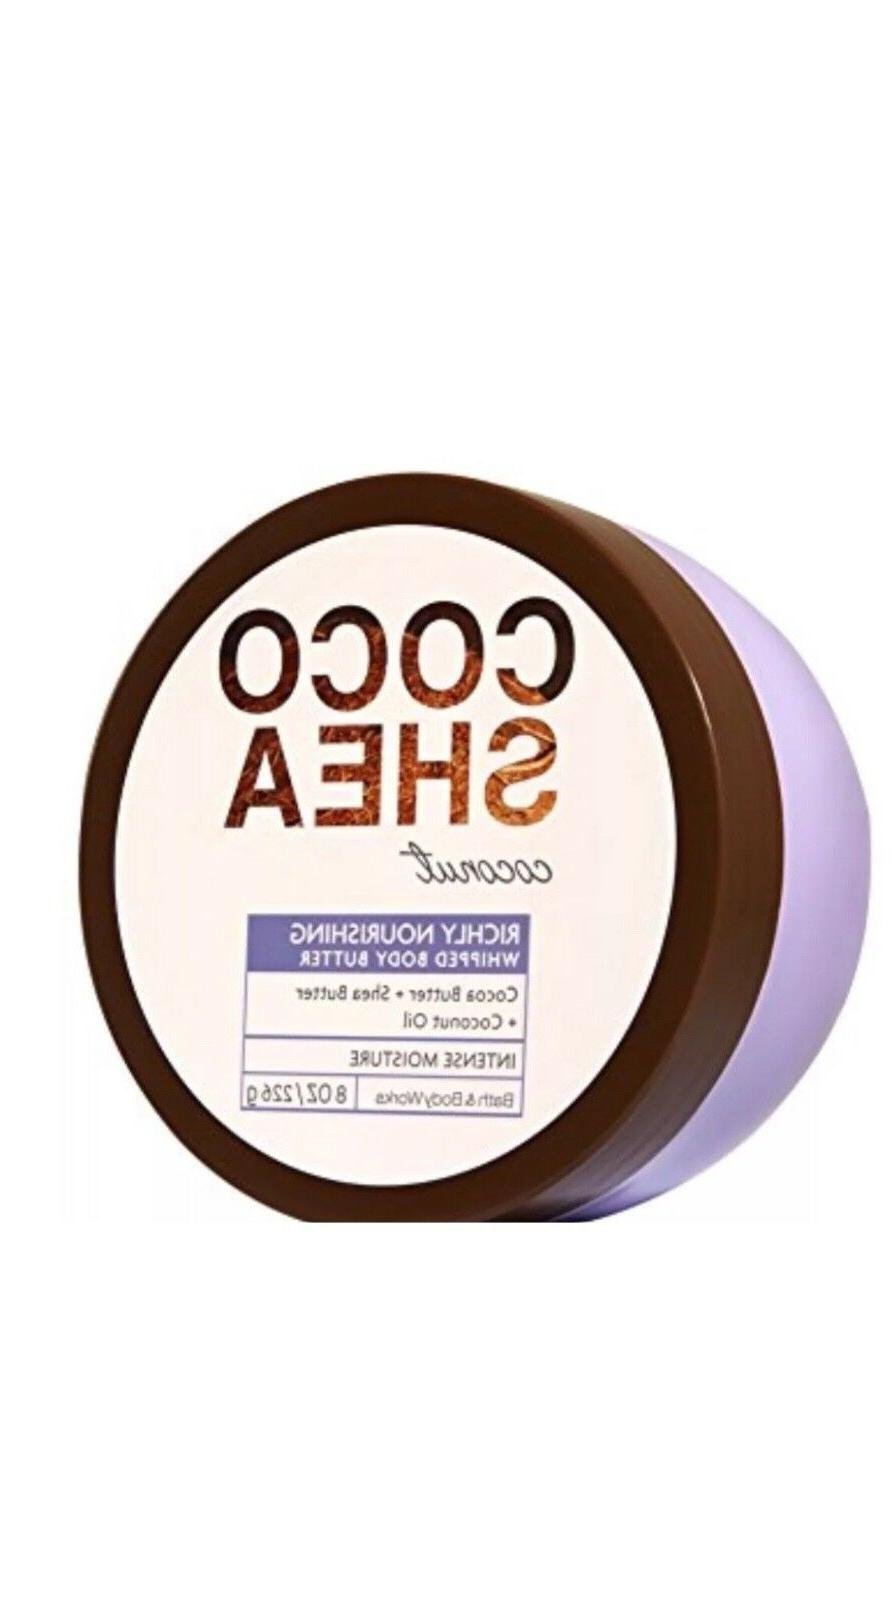 new bath body works coco shea coconut